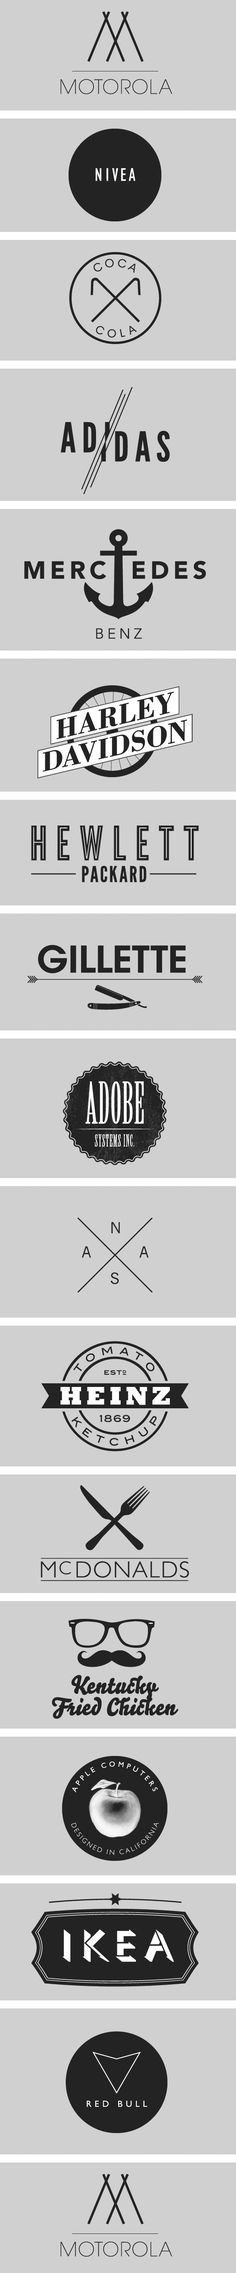 Hipster Logos Style - ha!